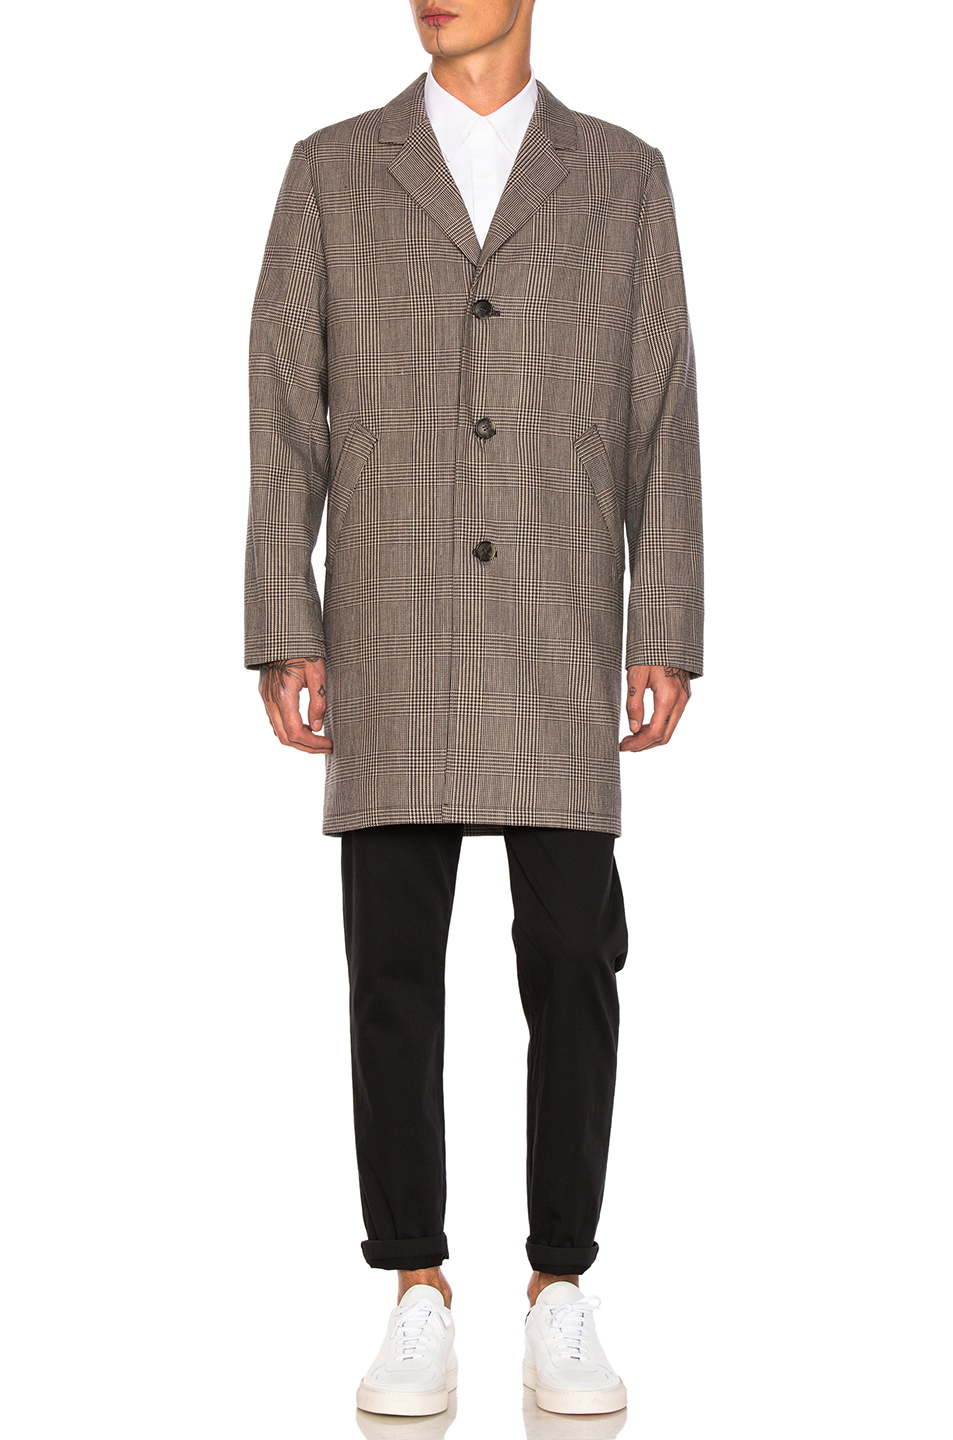 A.P.C. Tristan Coat in Brown,Checkered & Plaid